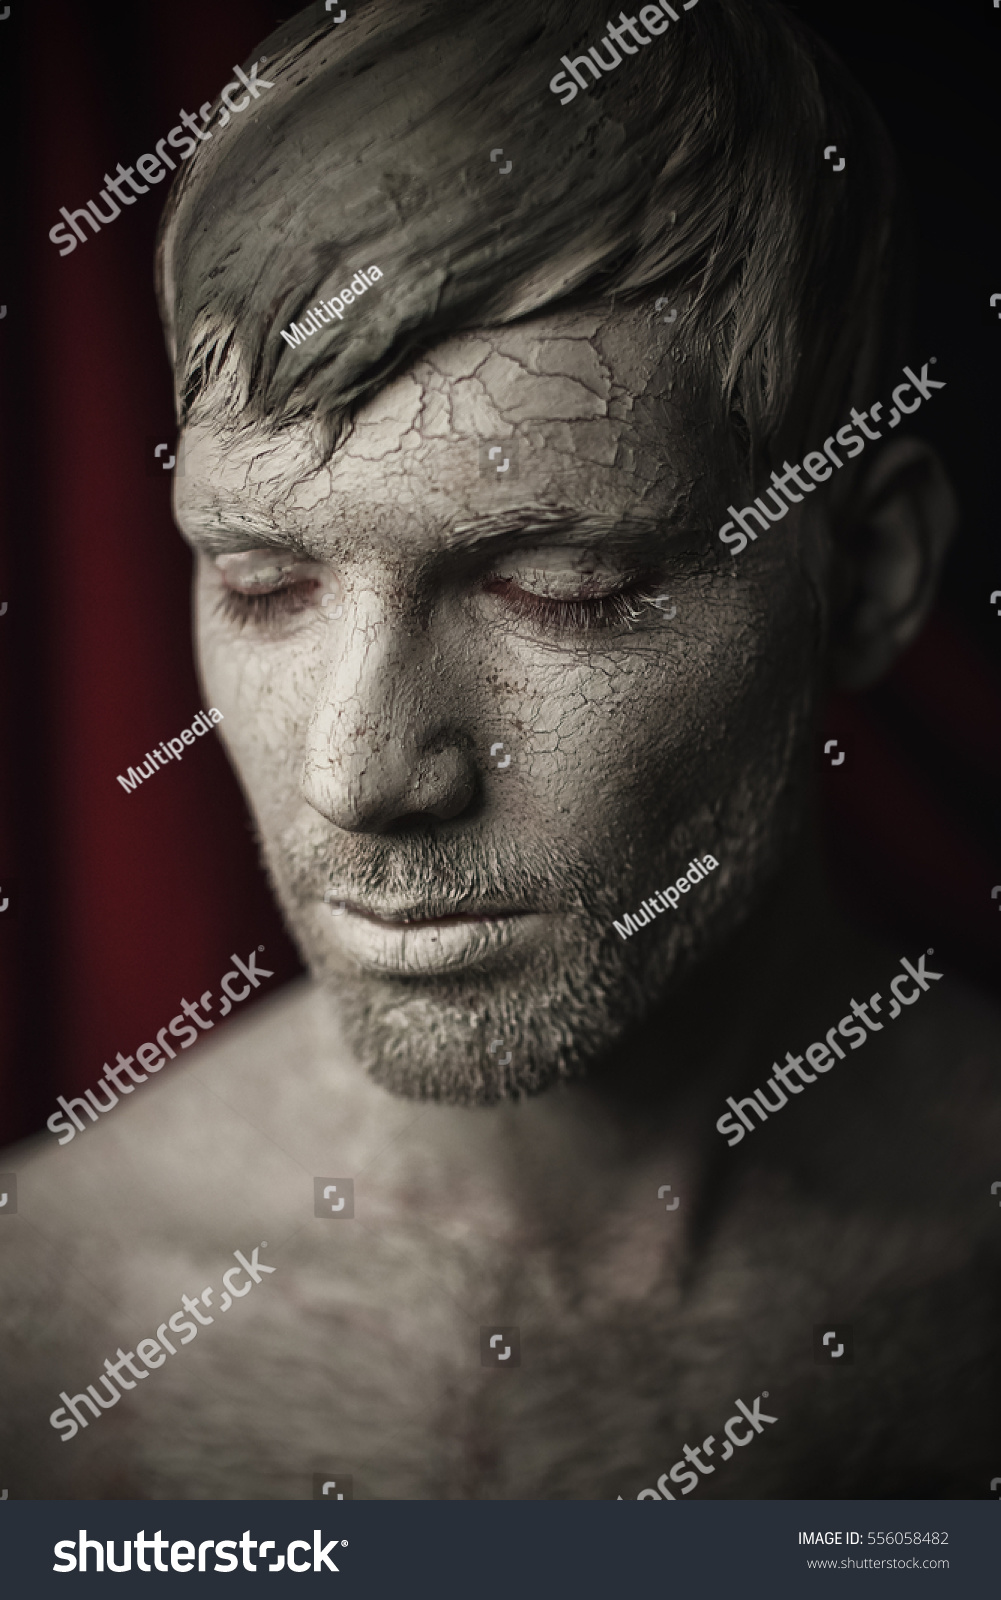 Naked man mud stock image. Image of passion, muscular